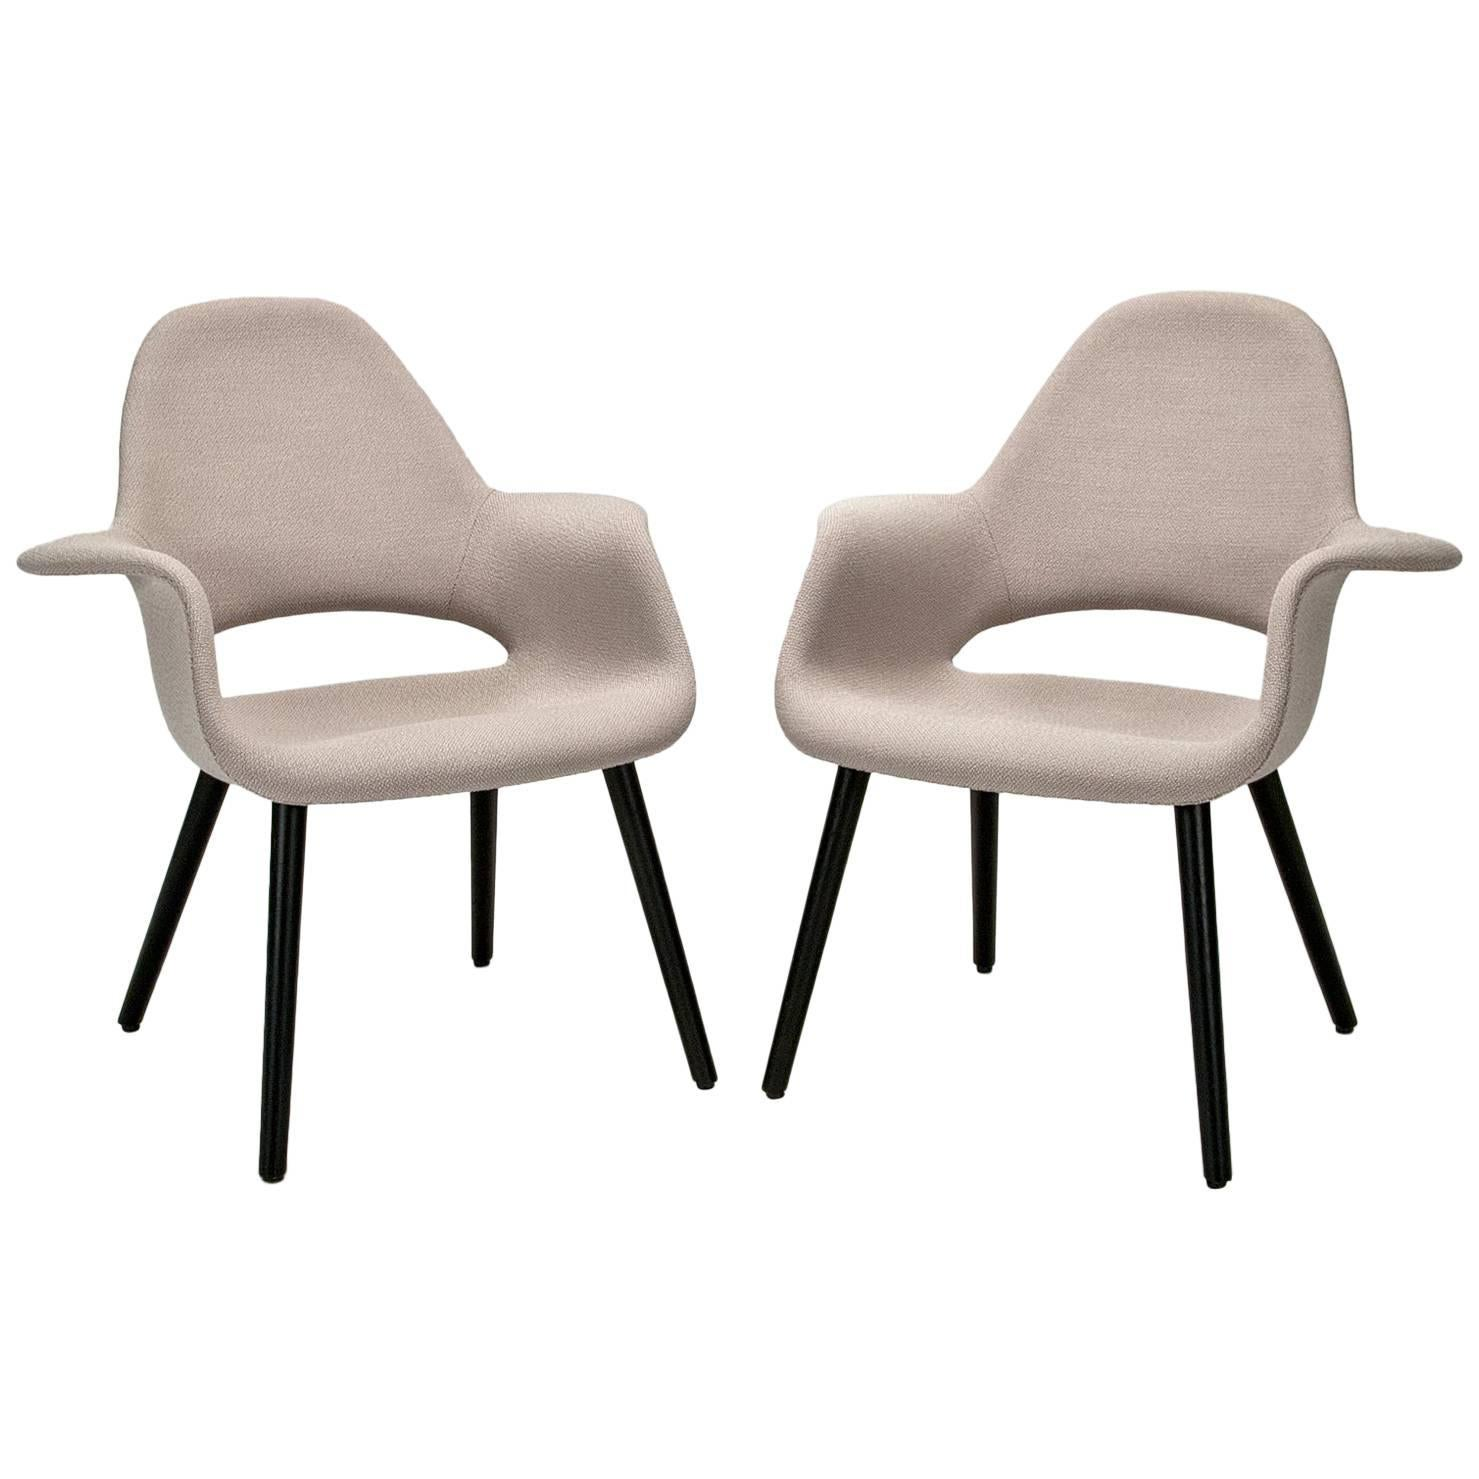 Vitra Eames Armchair Pair Of Organic Armchairs By Charles Eames And Eero Saarinen For Vitra